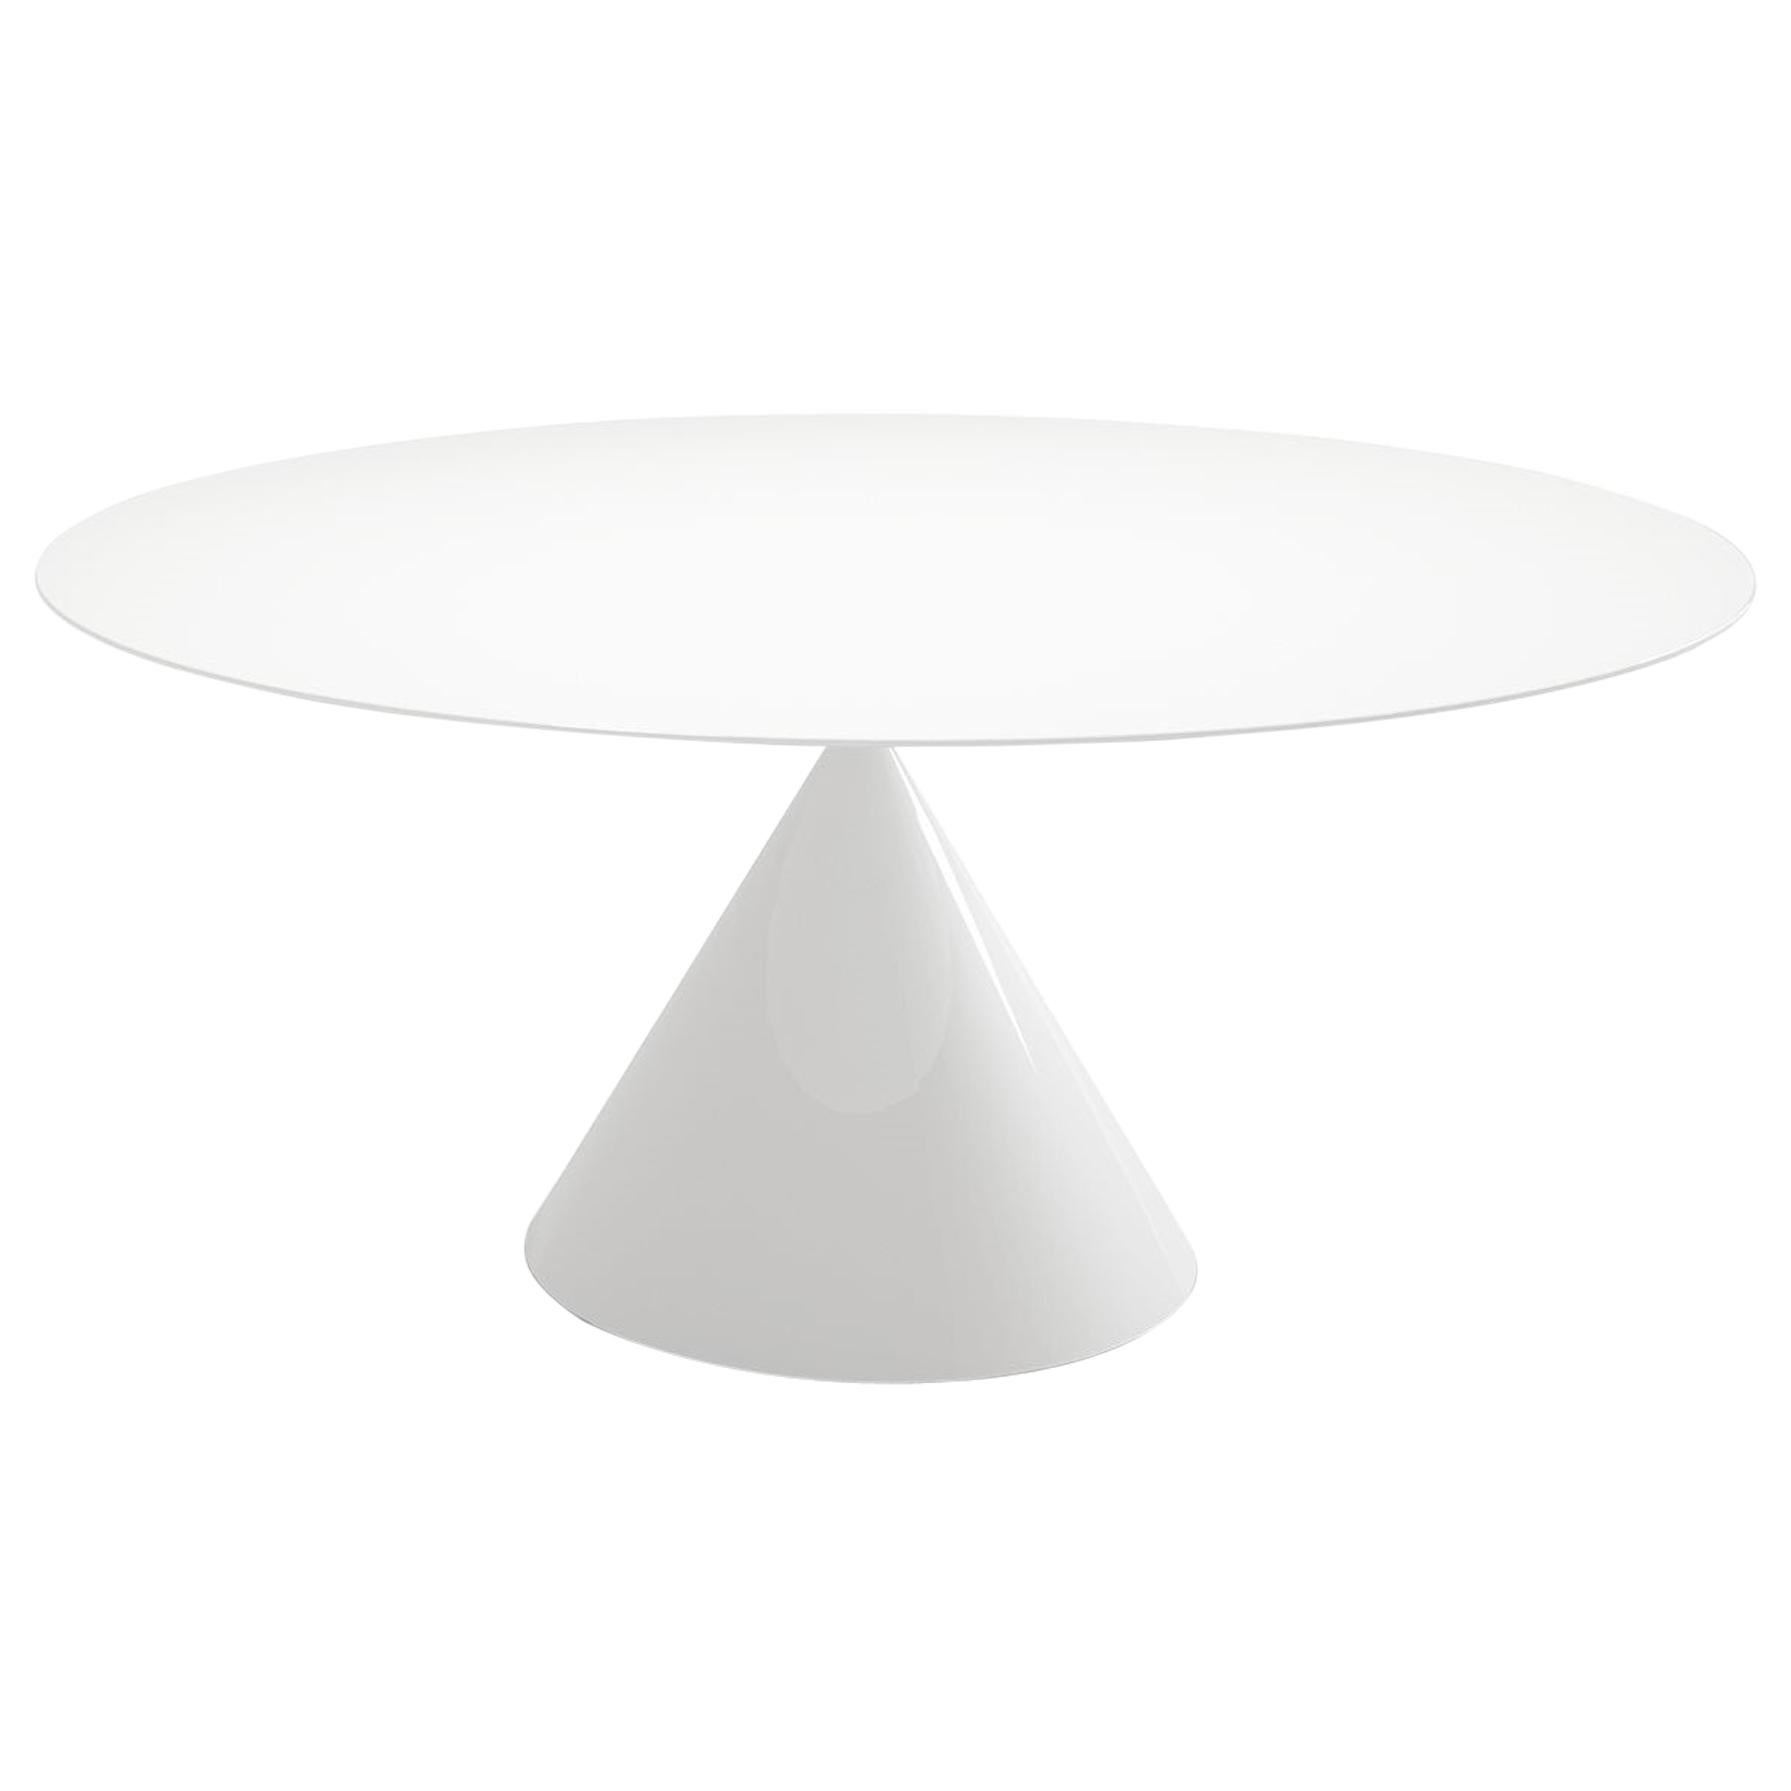 Desalto Round Clay Table with Ceramic Top Designed by Marc Krusin